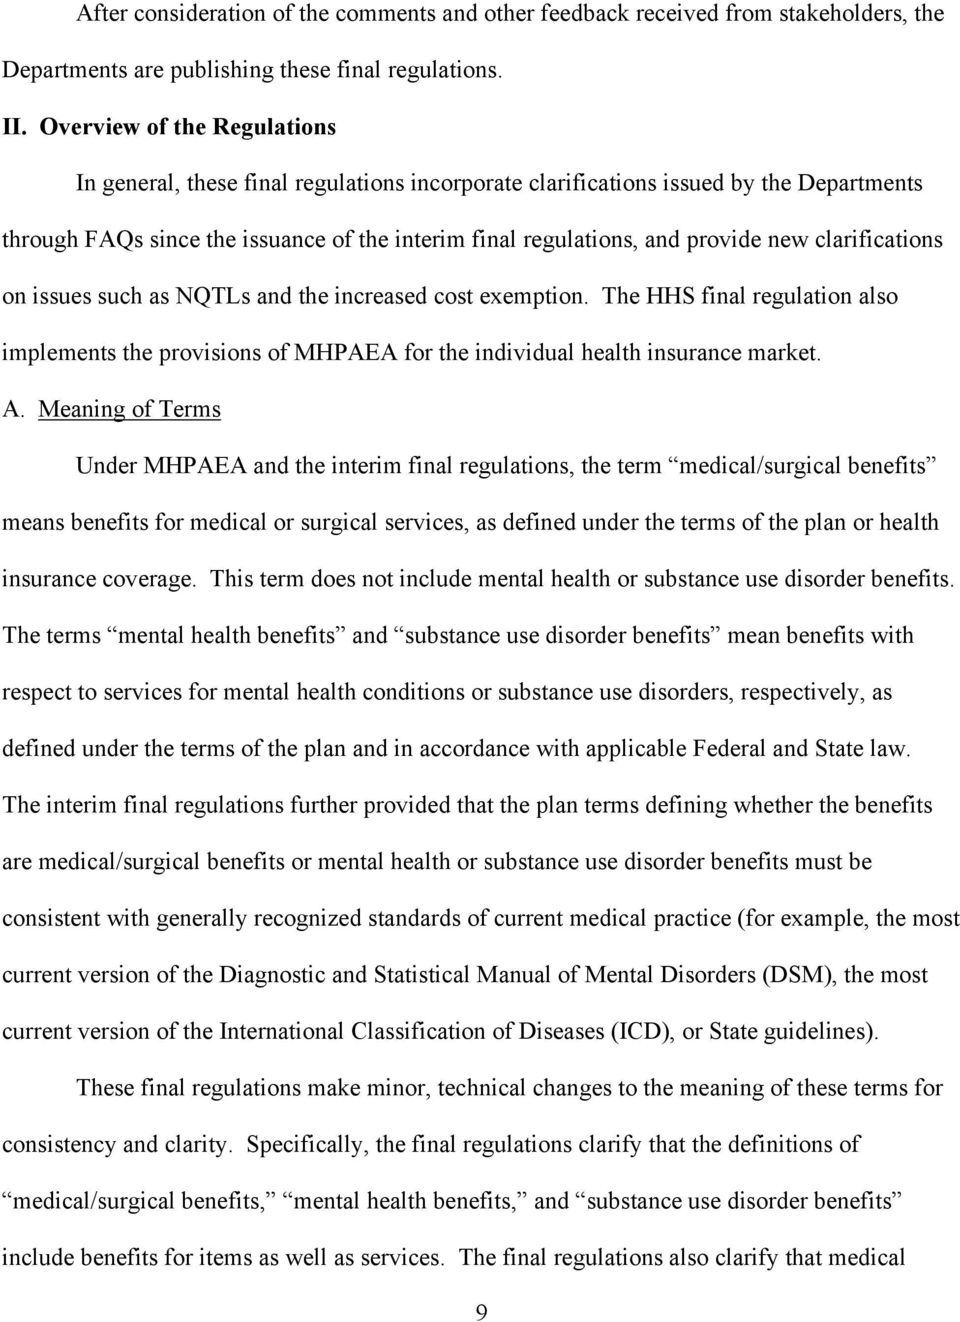 clarifications on issues such as NQTLs and the increased cost exemption. The HHS final regulation also implements the provisions of MHPAEA for the individual health insurance market. A.